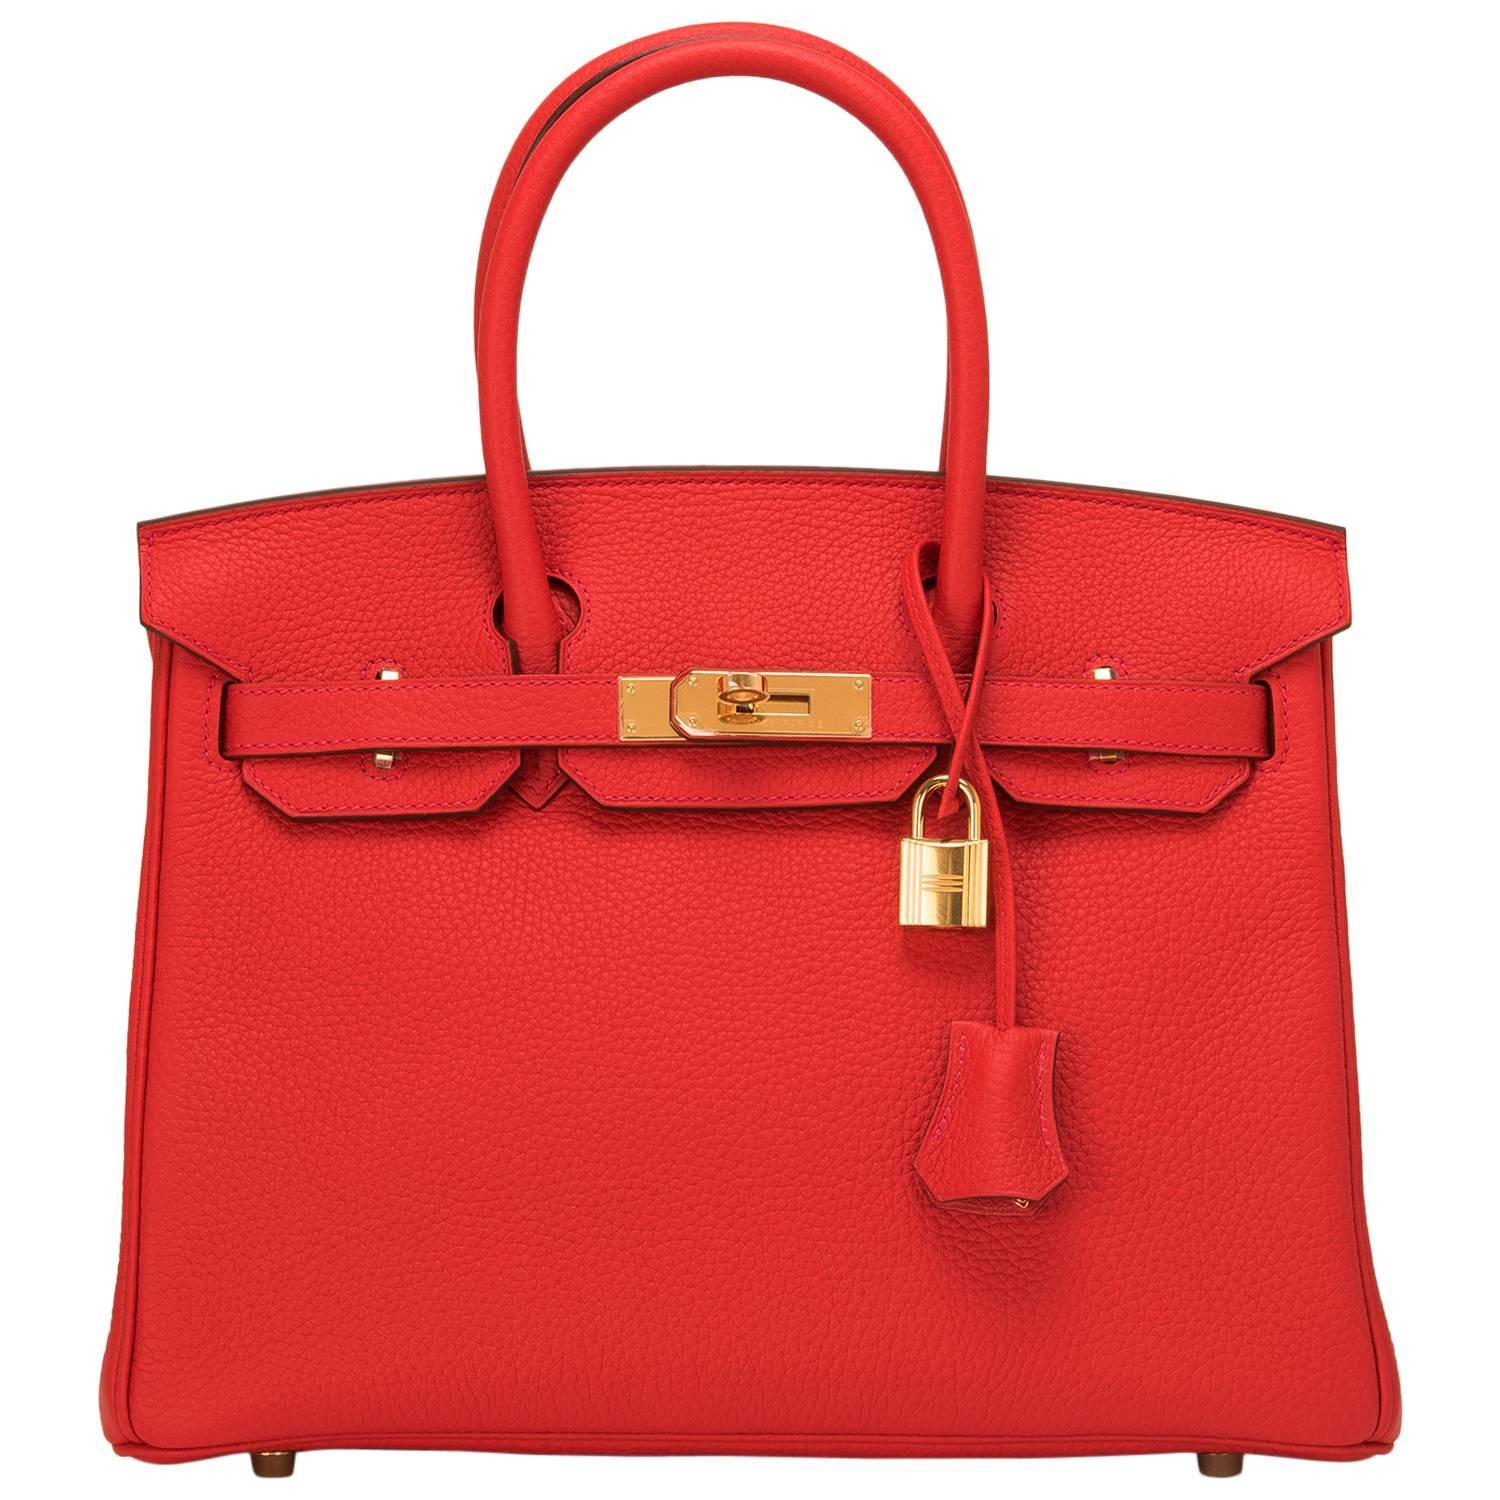 hermes birkin bag replica cheap - Hermes Rouge Tomate Clemence Birkin 30cm Gold Hardware For Sale at ...